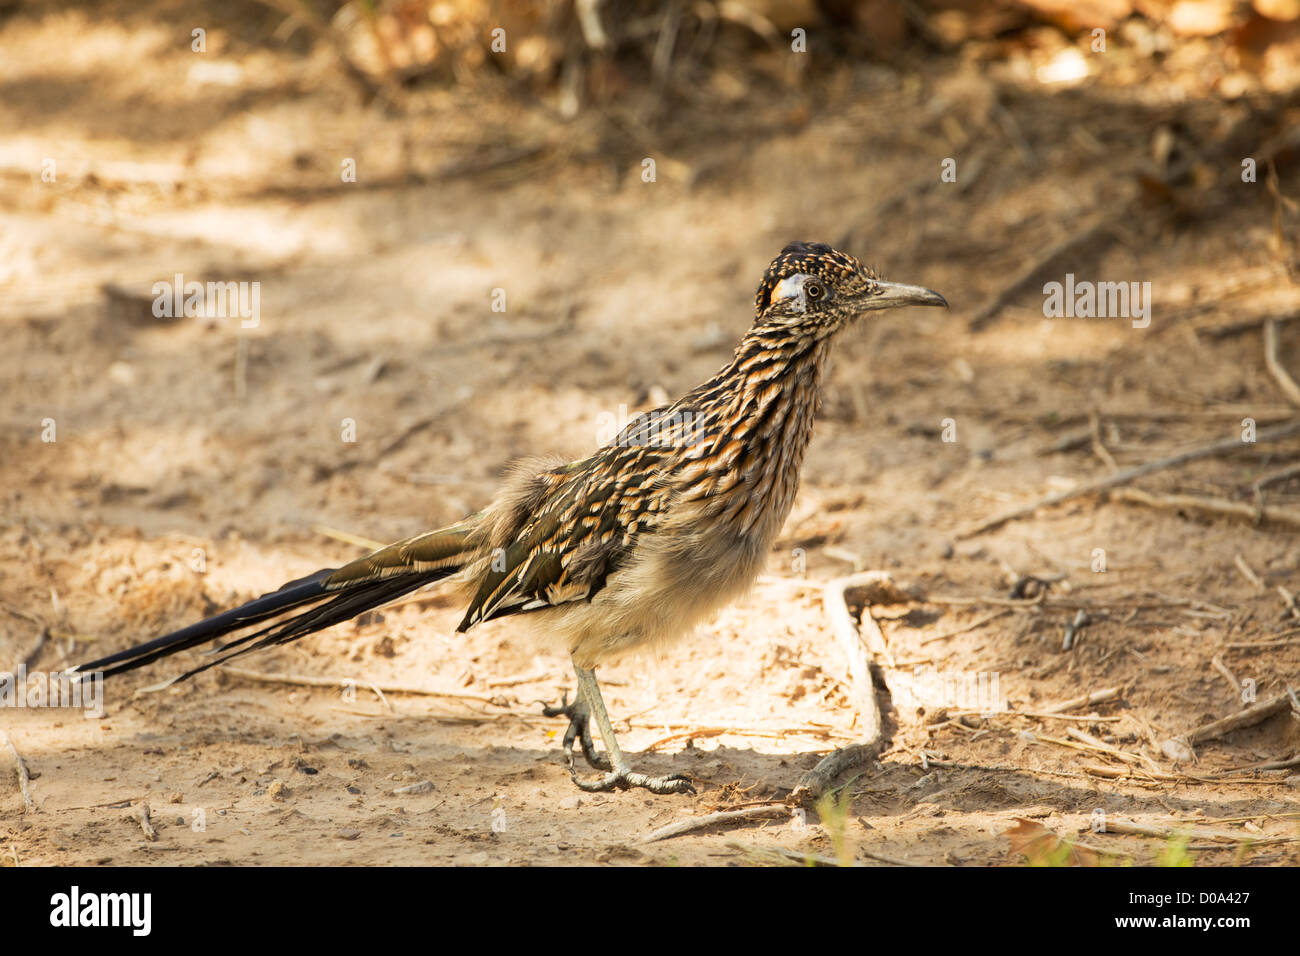 A roadrunner(chapparel) in Big Bend national park,TX - Stock Image